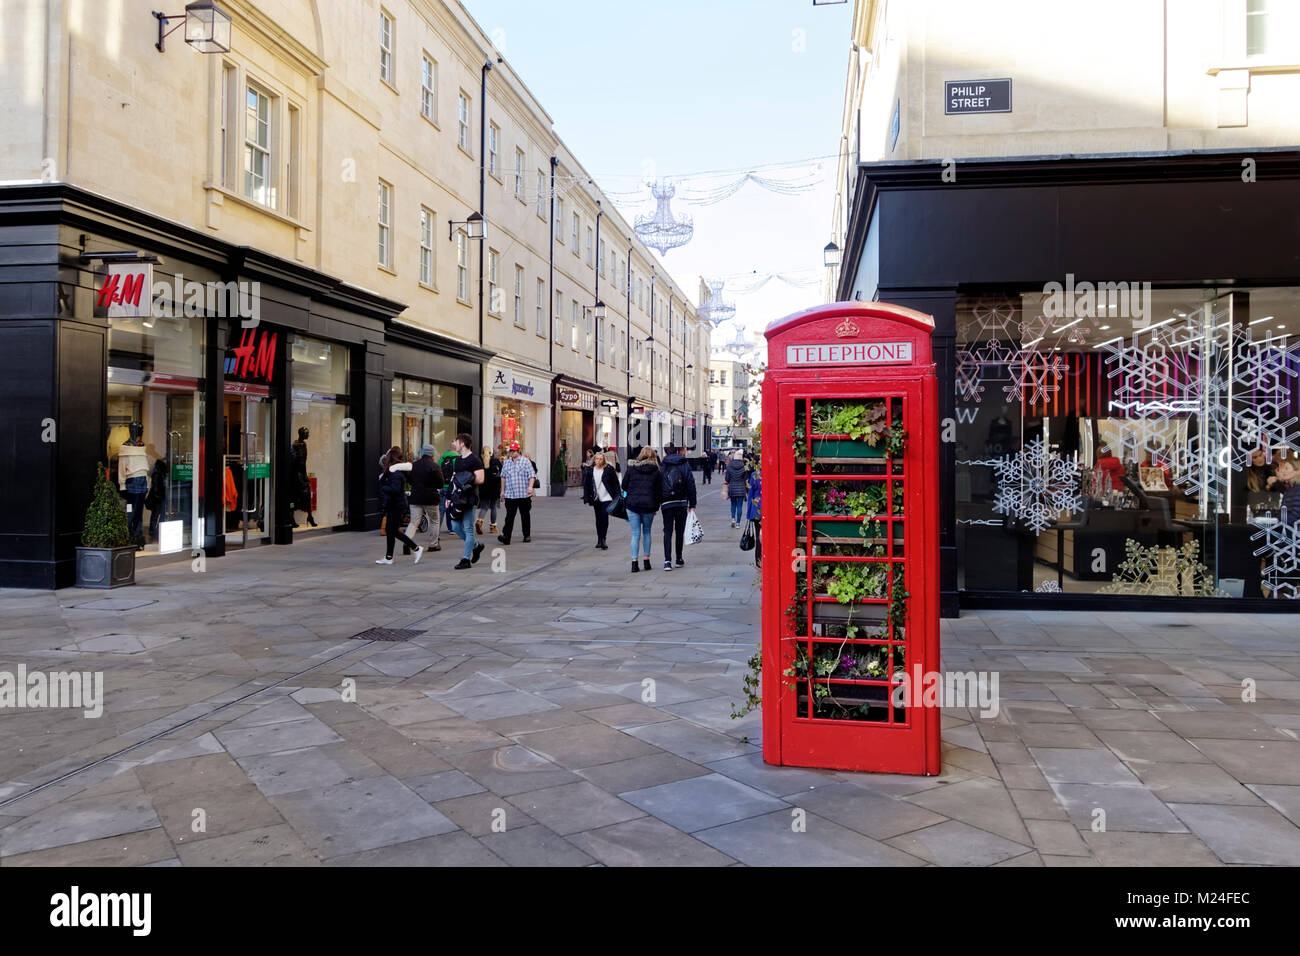 A Traditional British Red Telephone Box filled with plants in Philip Street, Bath, Somerset, England, United Kingdom - Stock Image